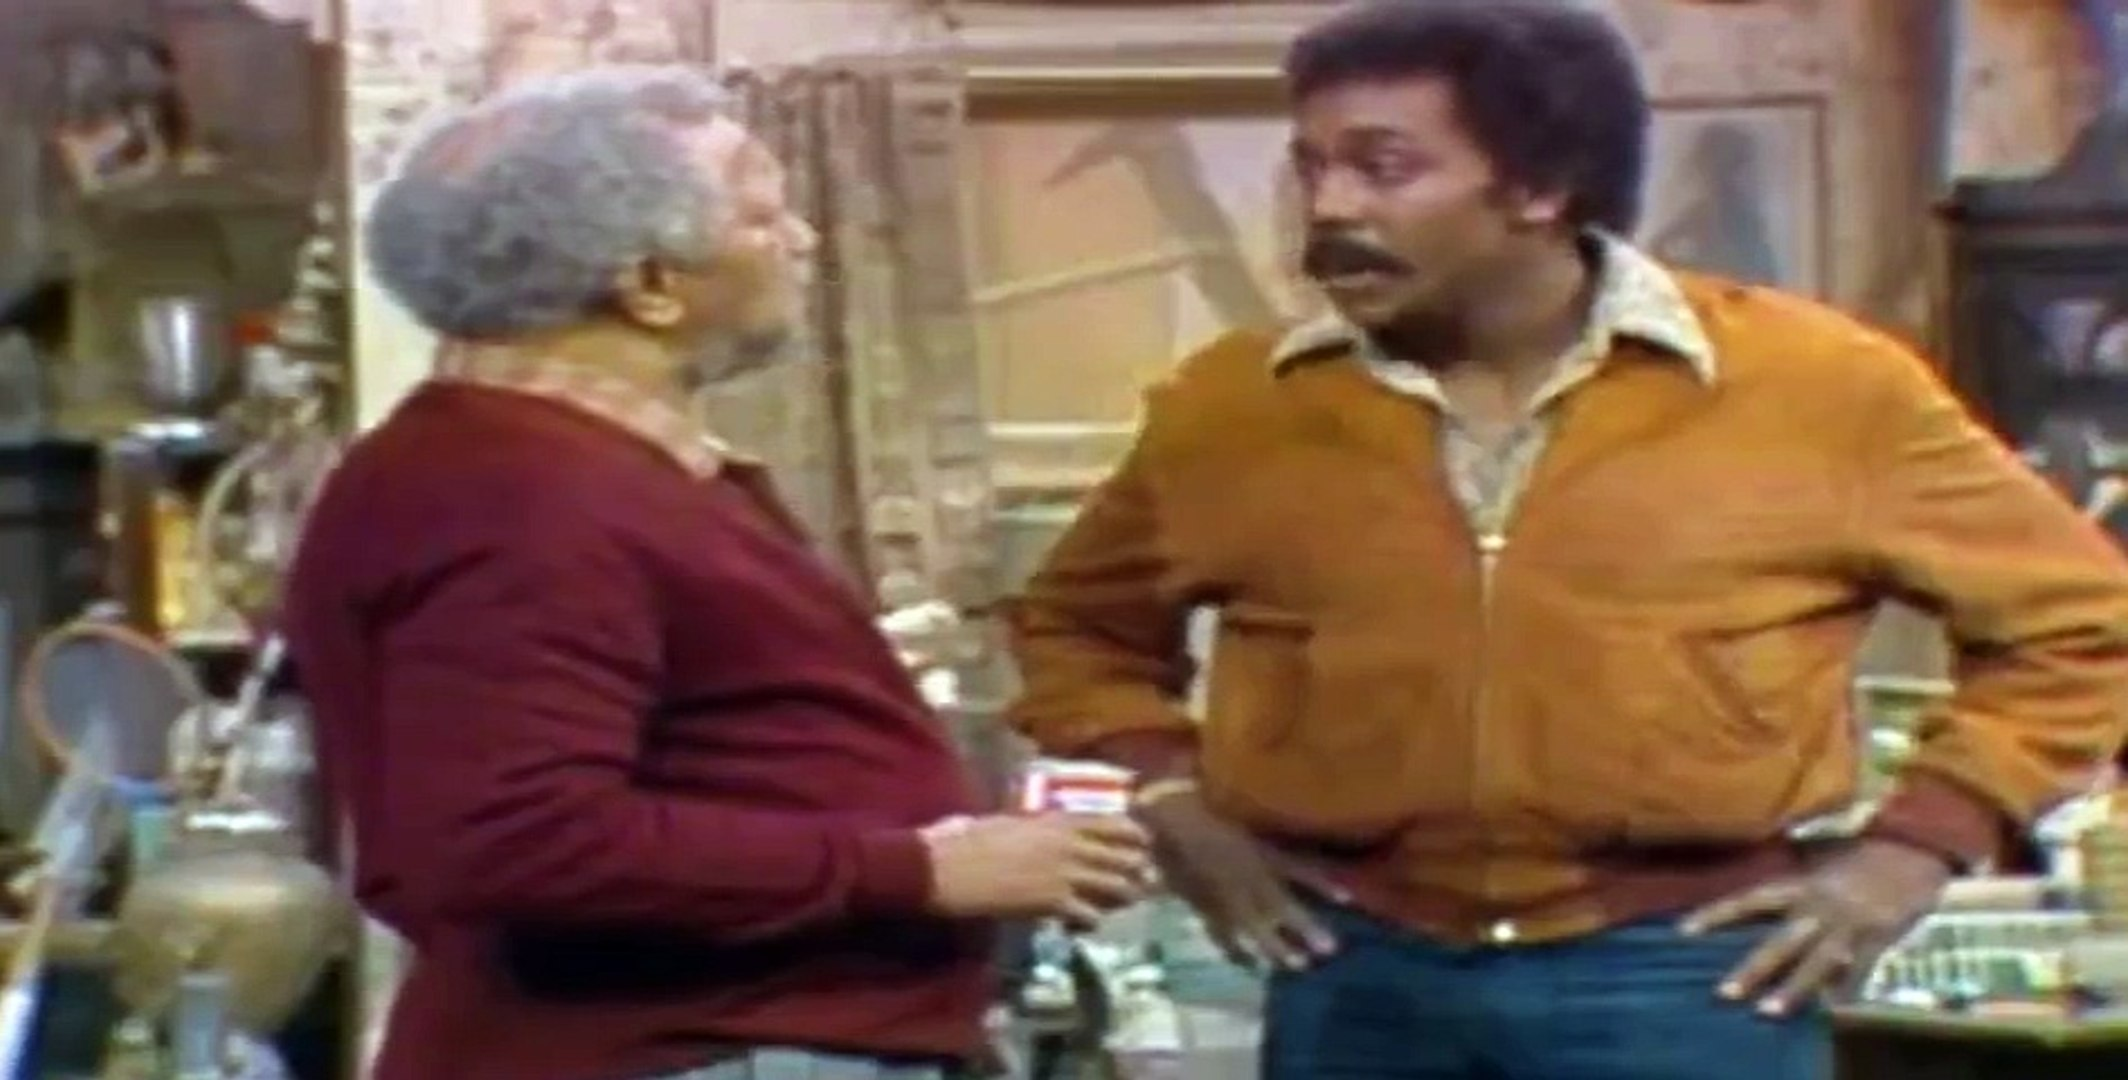 Sanford and Son S02 - Ep21 Home Sweet Home for the Aged HD Watch